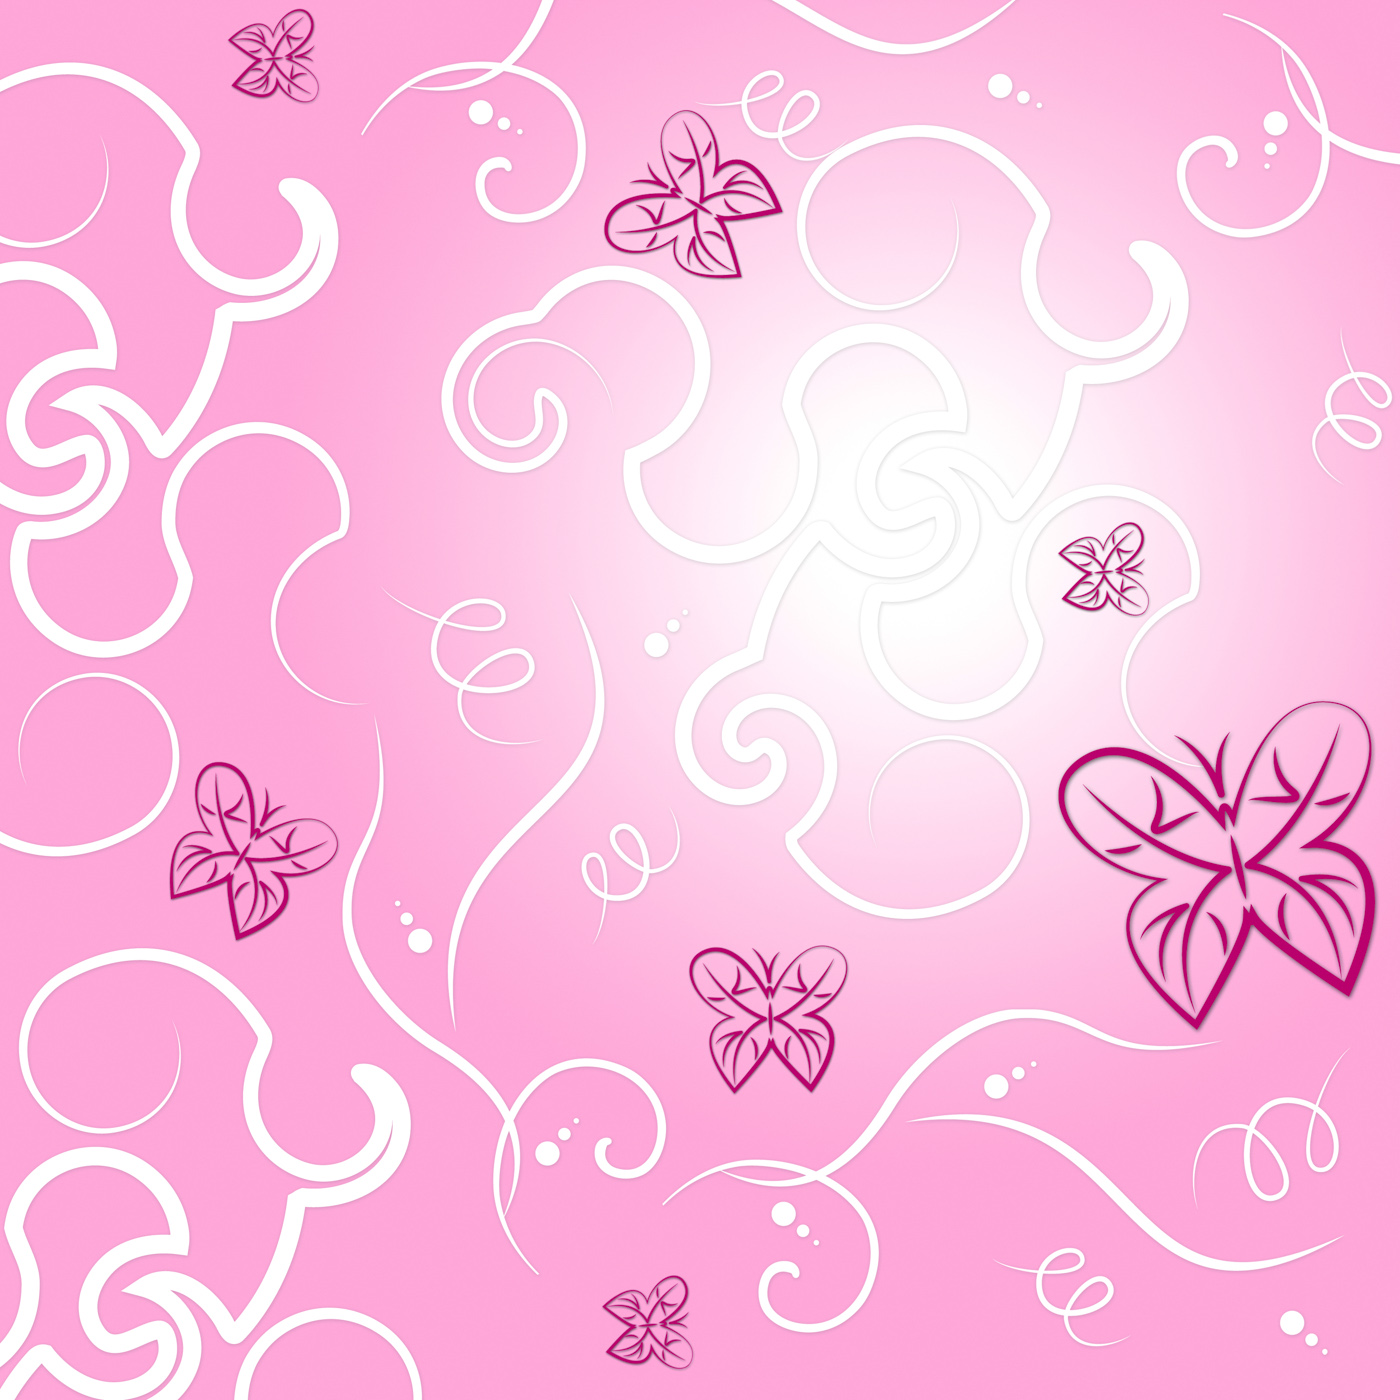 Nature pink means backgrounds design and outdoors photo